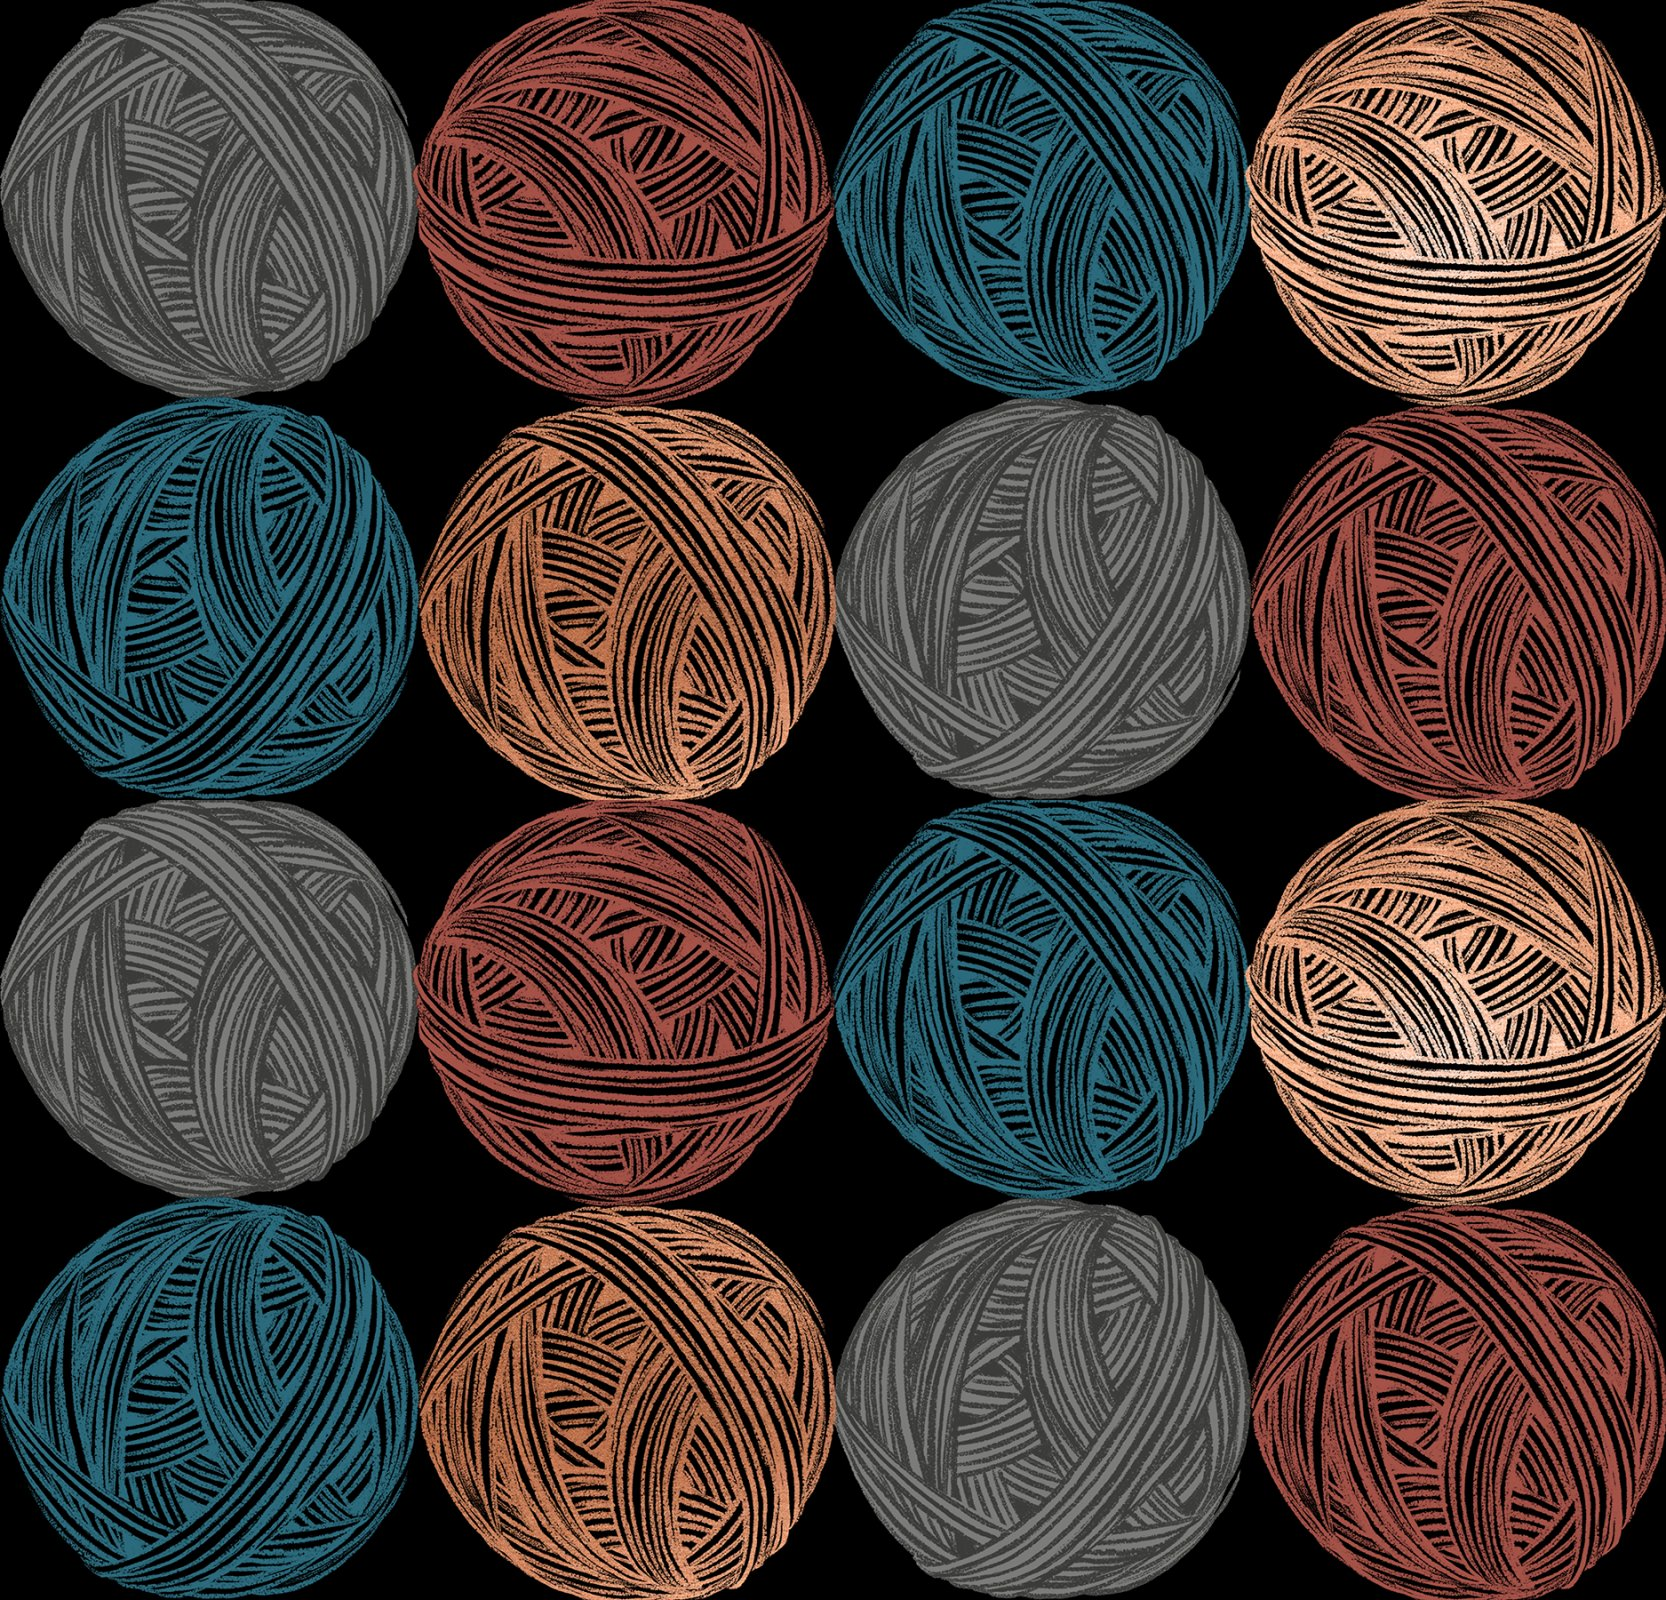 Ruby Star Society Purl Cotton/Linen Canvas - Wound Up - Black Metallic